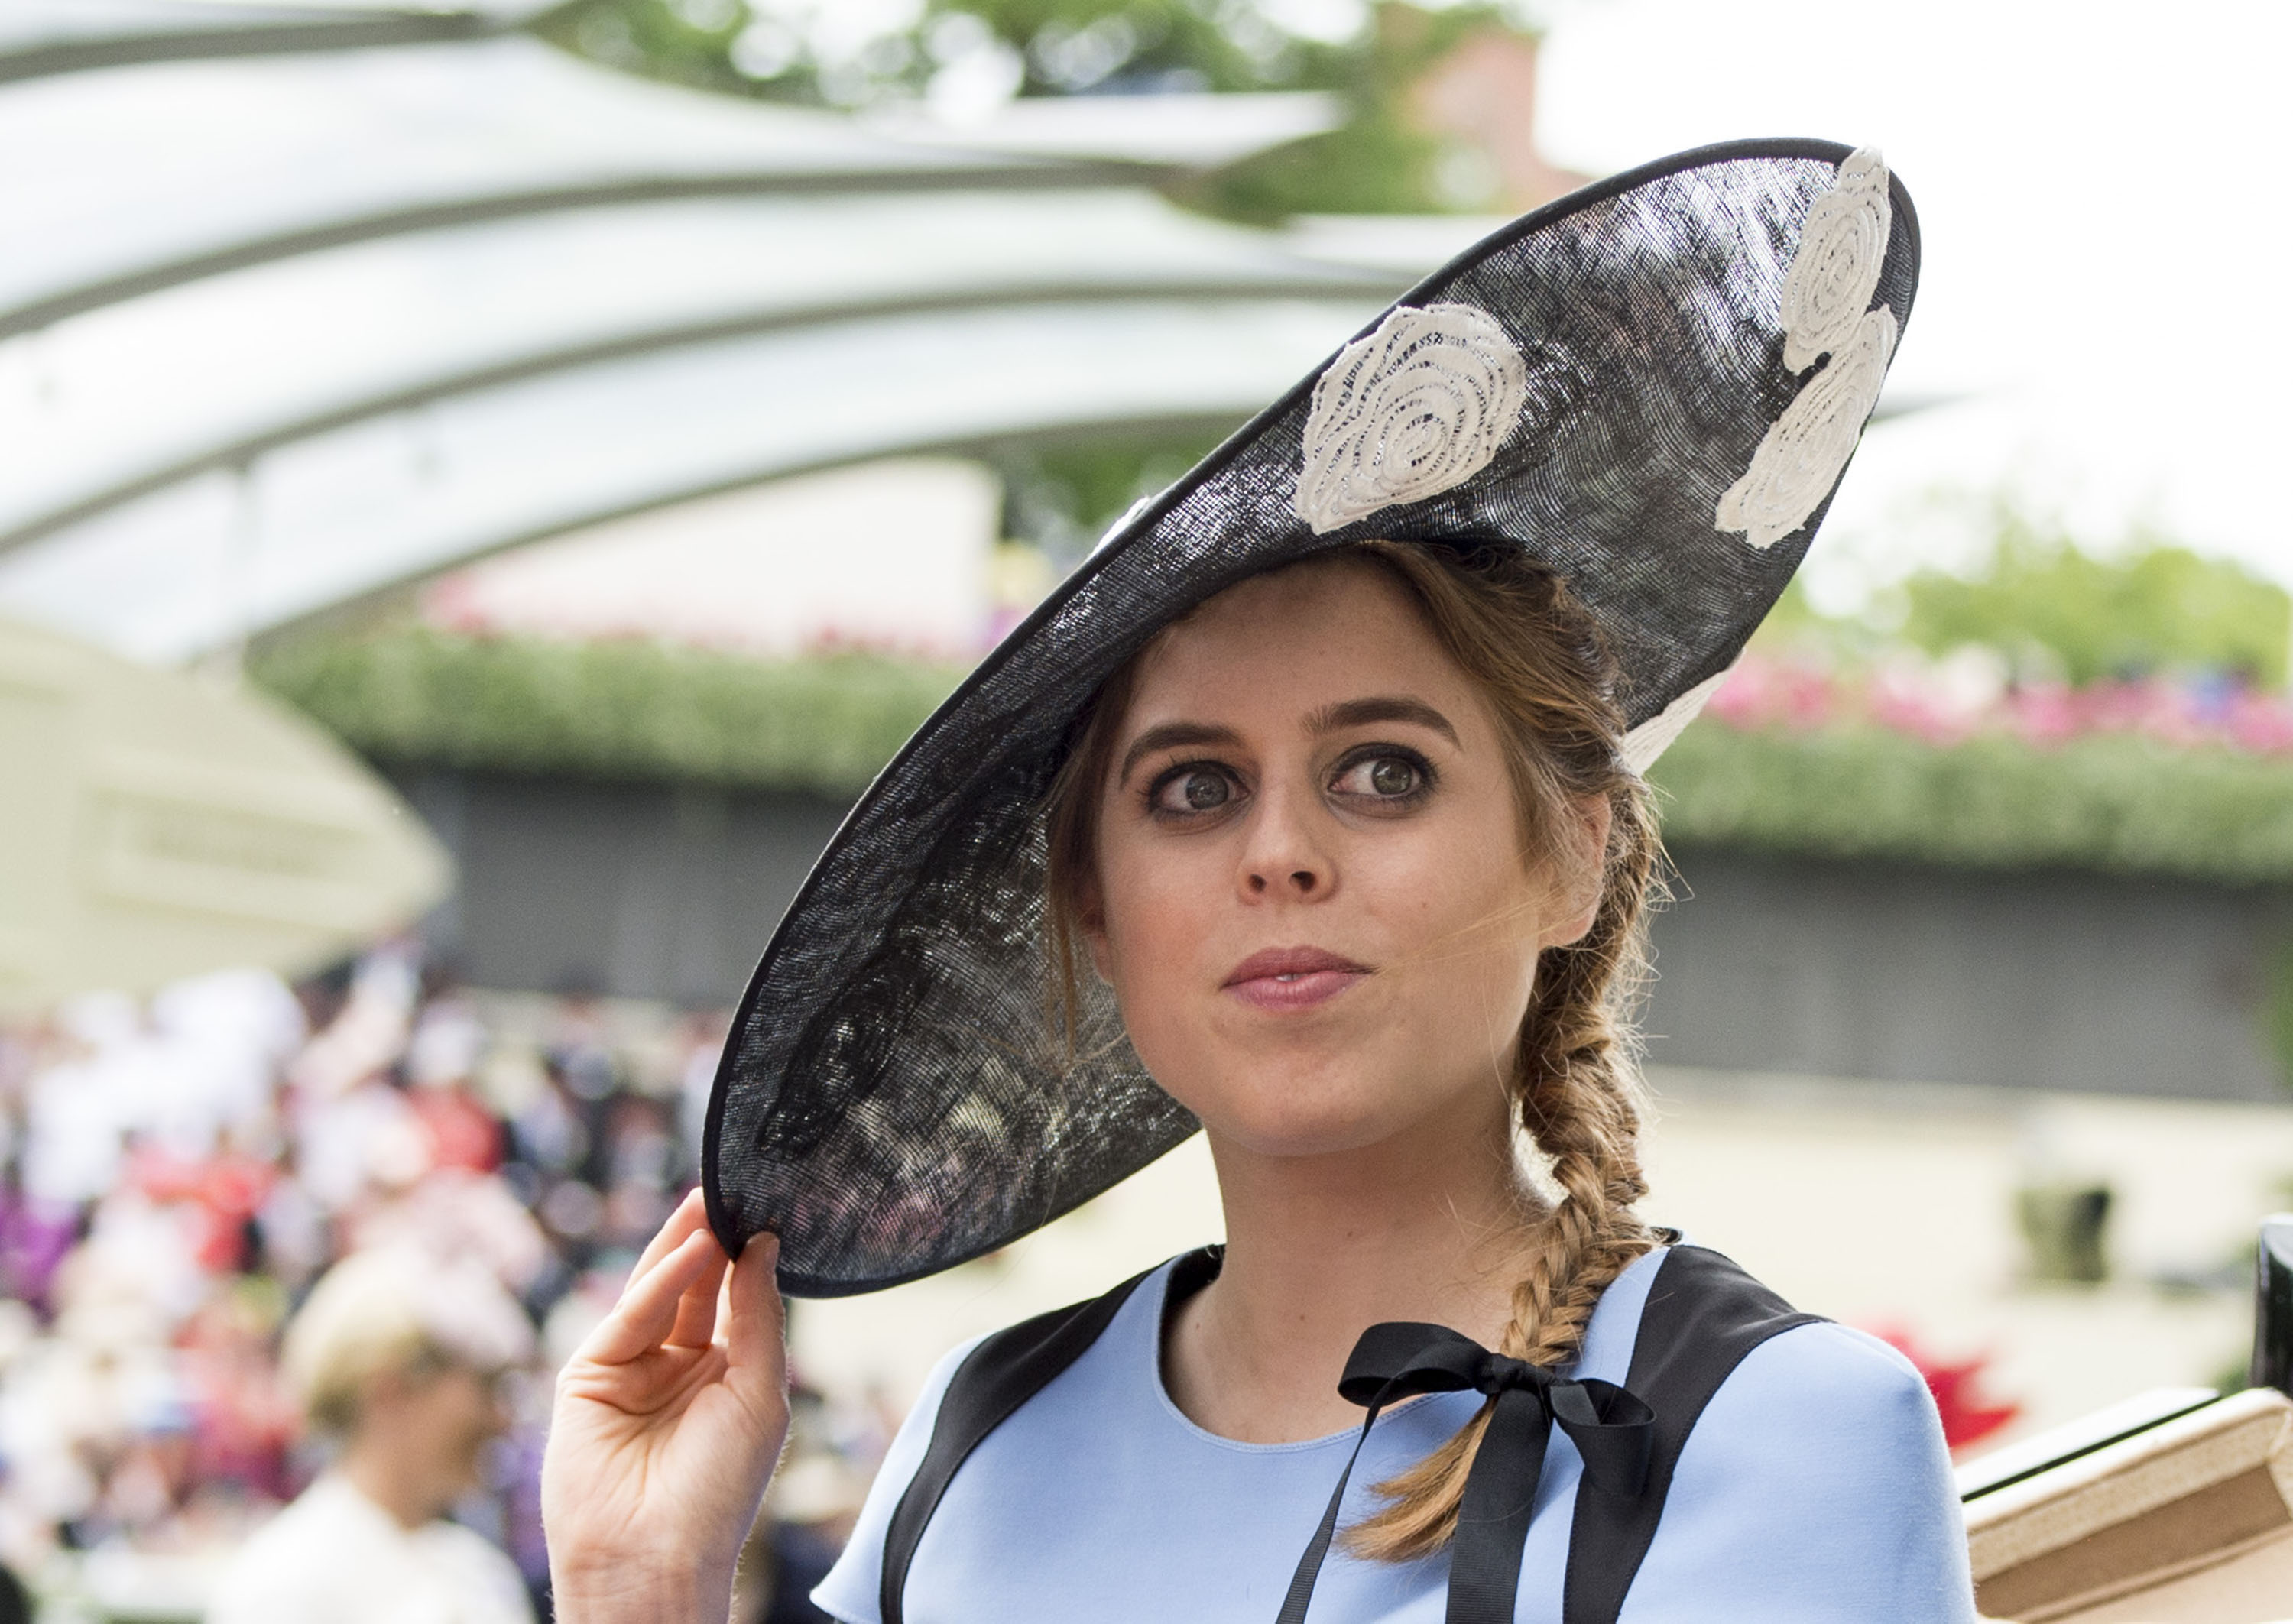 Princess Beatrice's Private Wedding Celebration Will Include a Regal Garden Tent